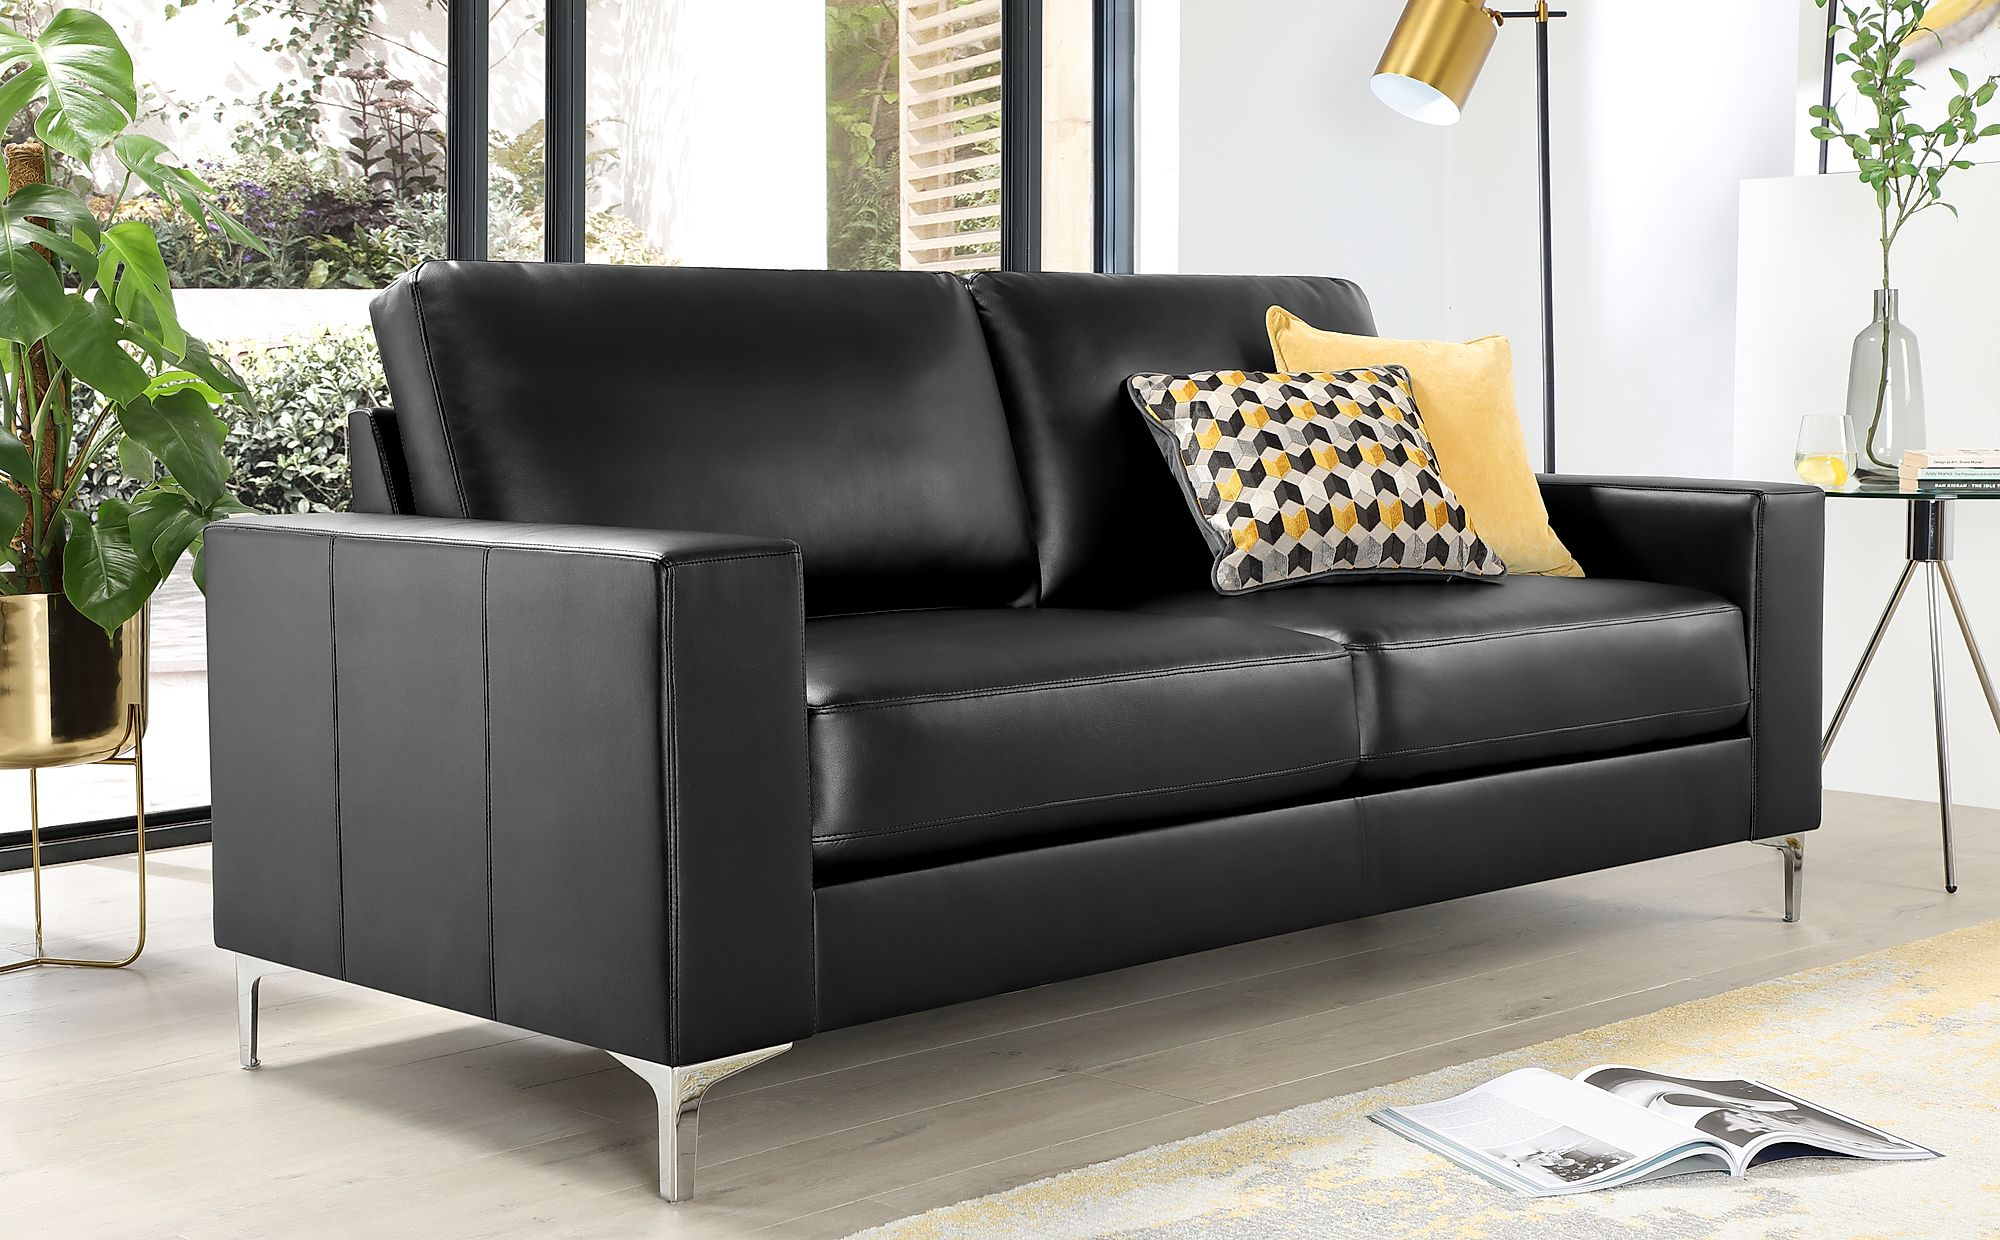 Baltimore 3 Seater Leather Sofa - Black Only £399.99 | Furniture Choice